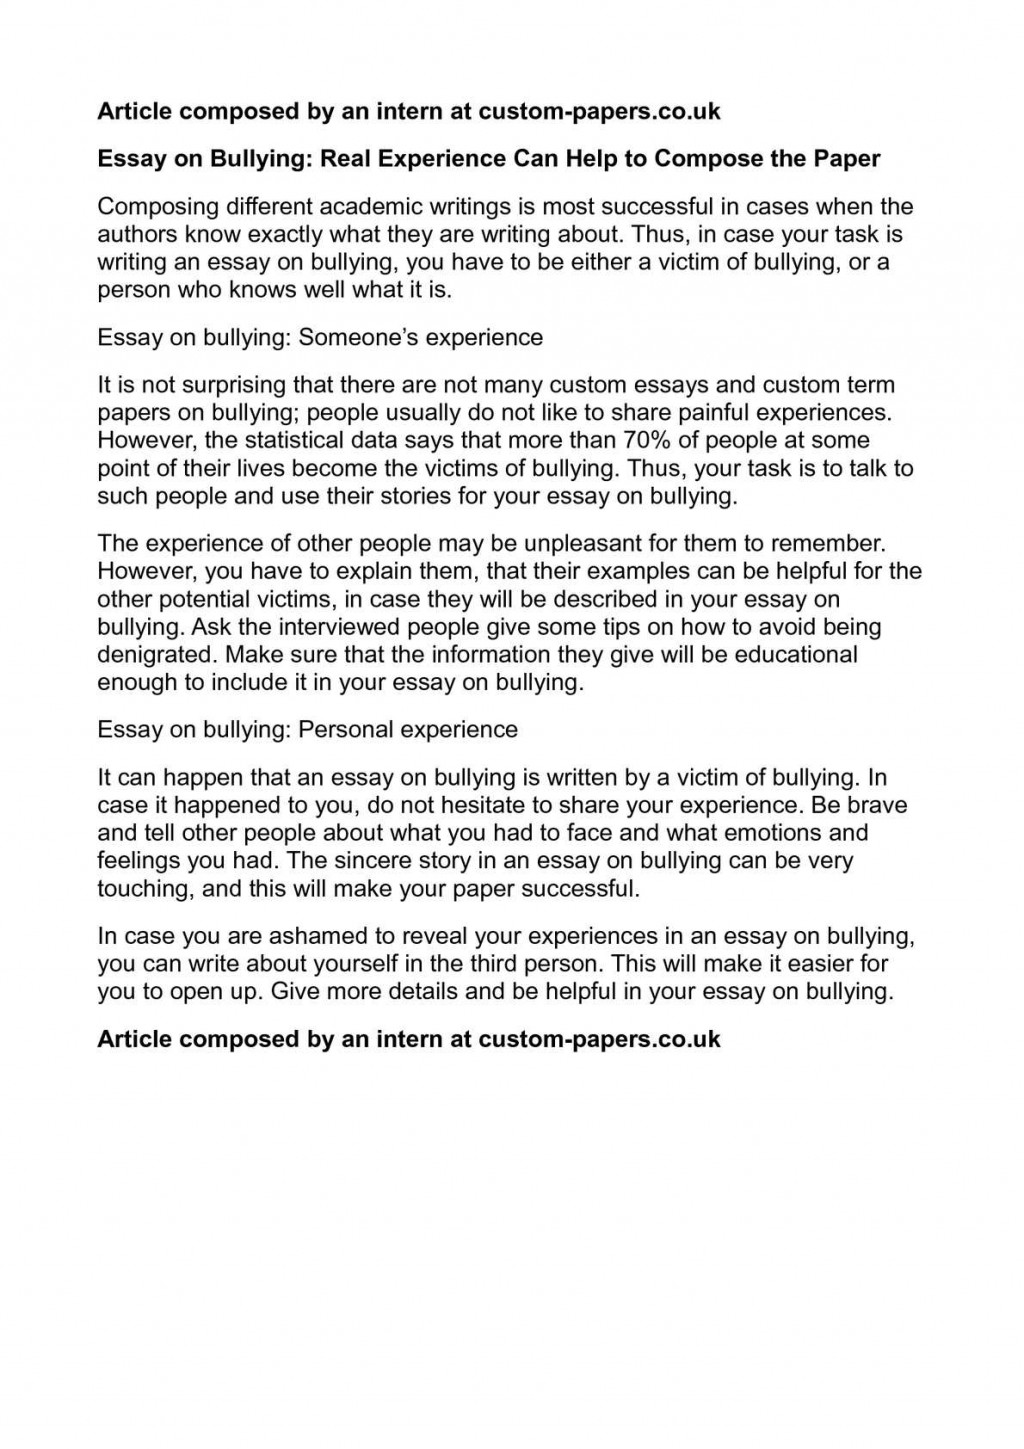 004 Personal Experience Essay P1 Fearsome Narrative Example Writing Prompts Large